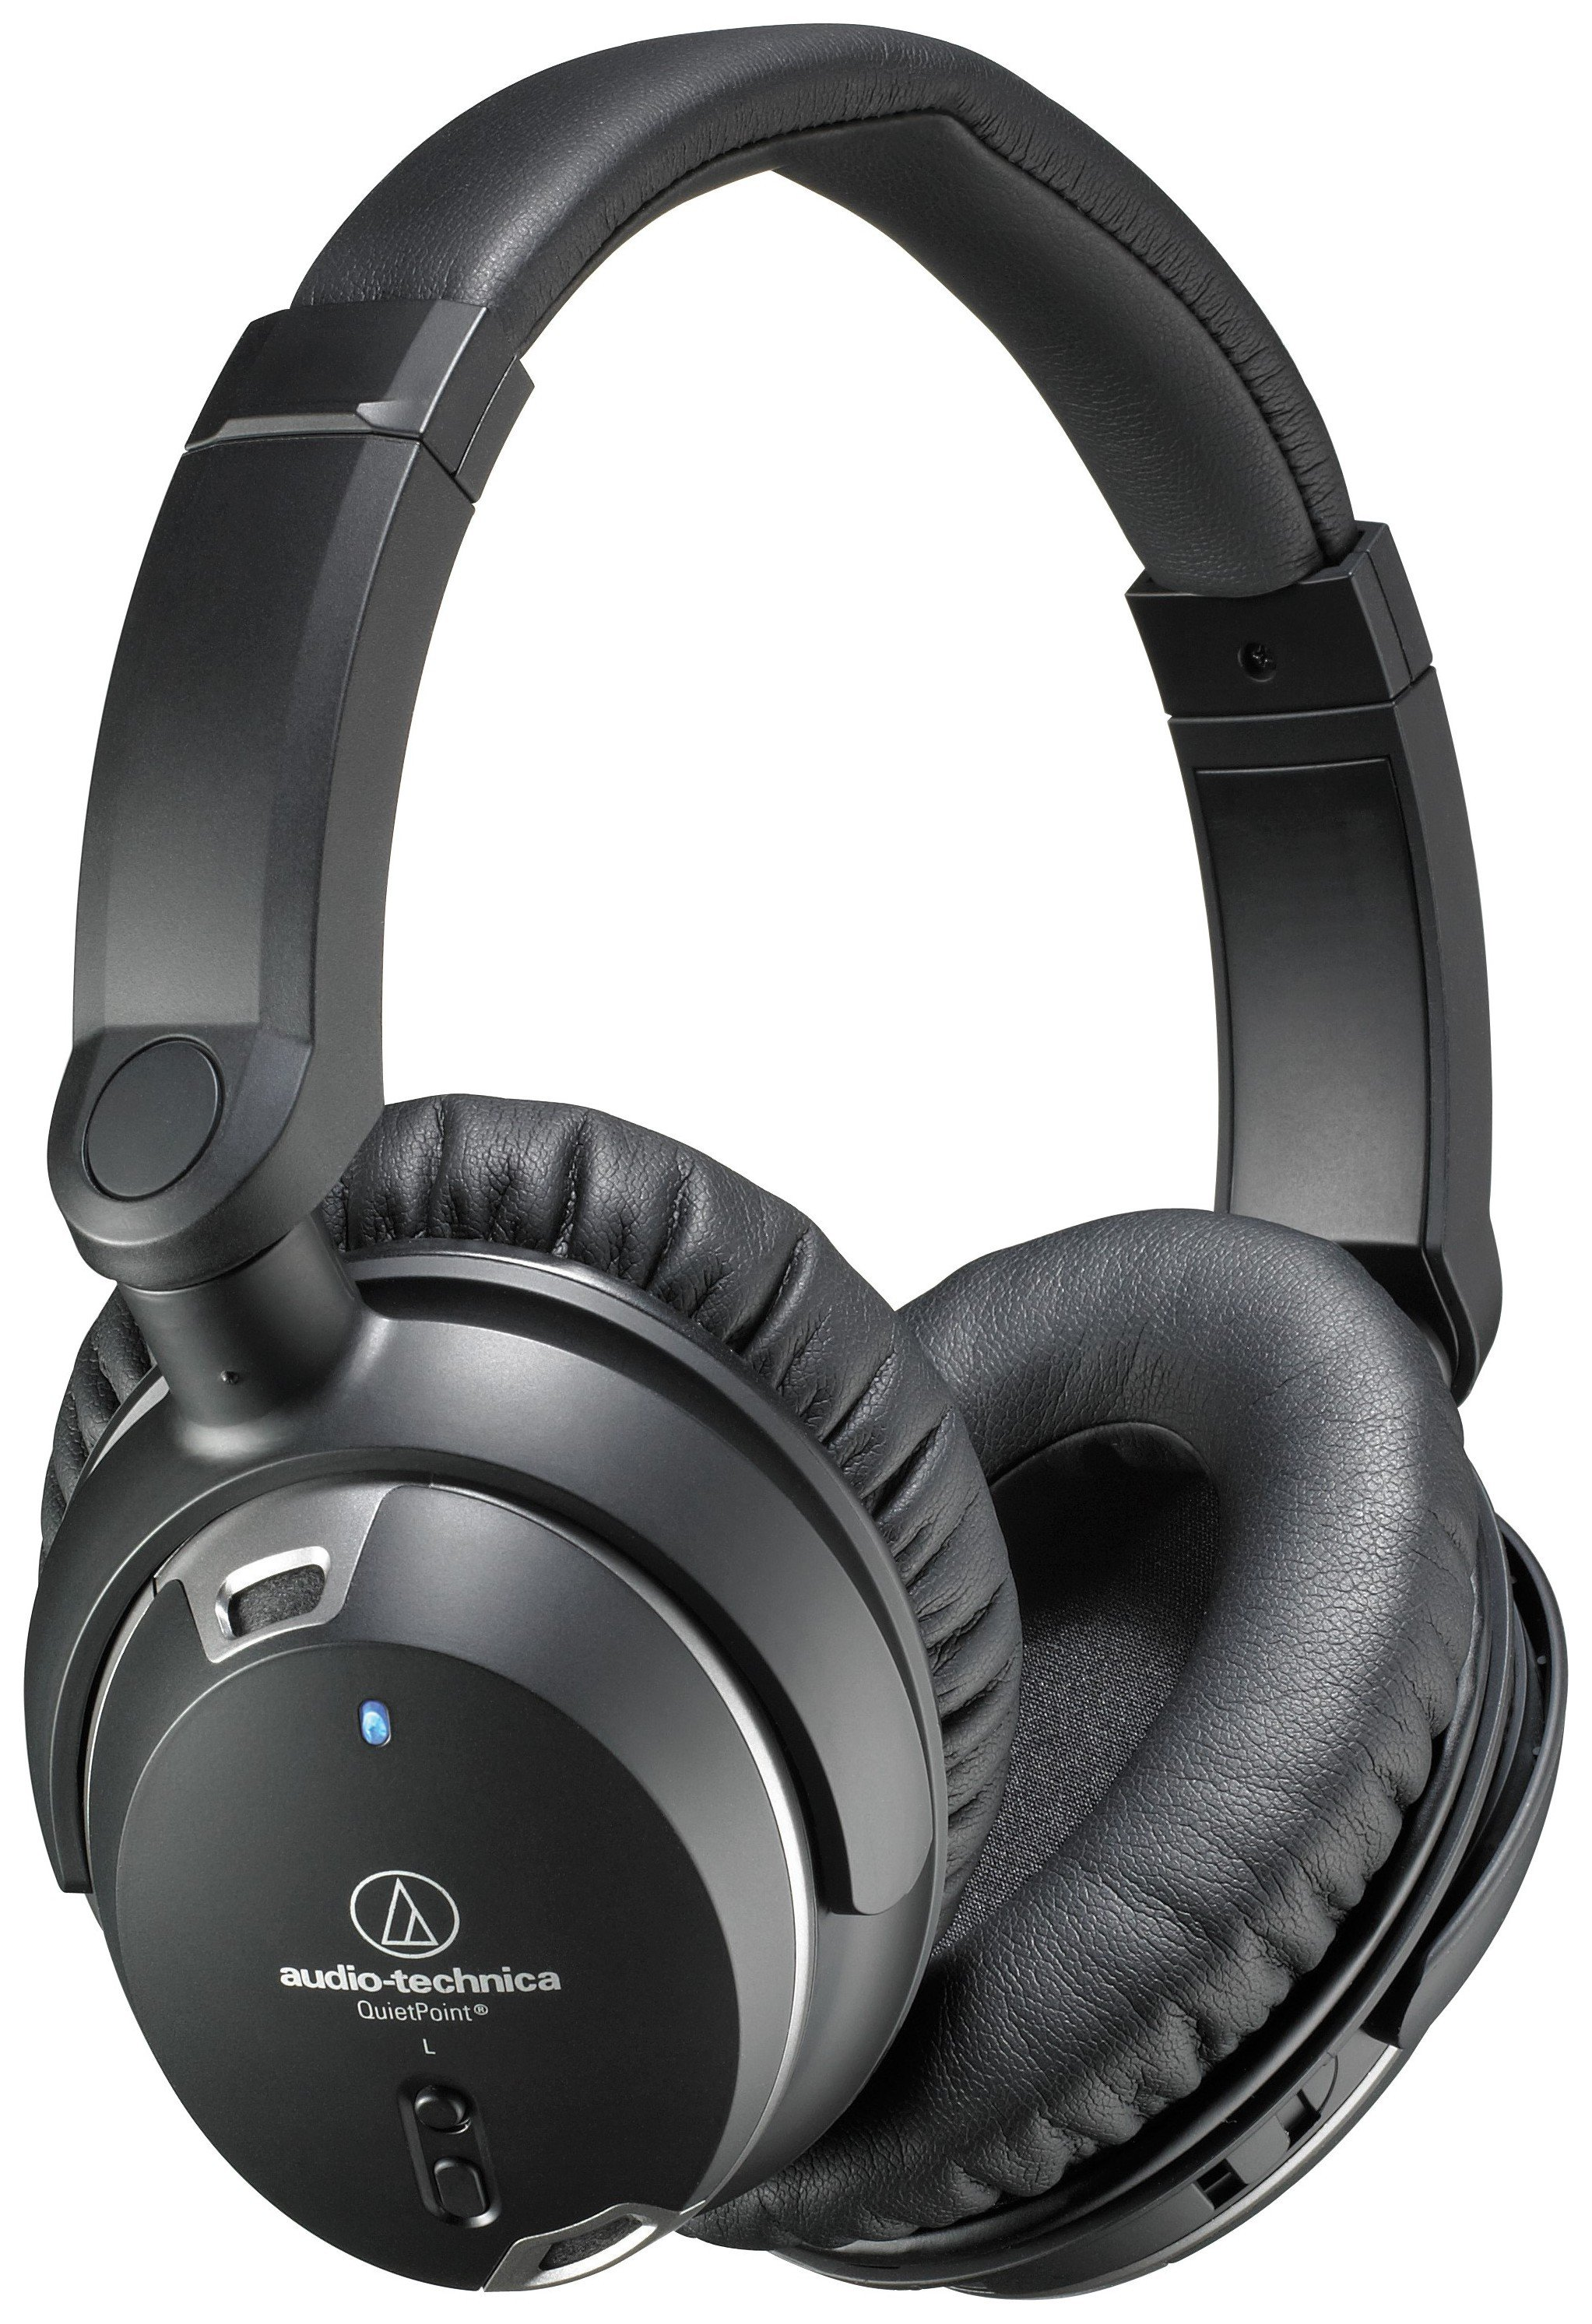 Audio Technica Audio Technica ATH-ANC9 On-Ear Headphones - Black.